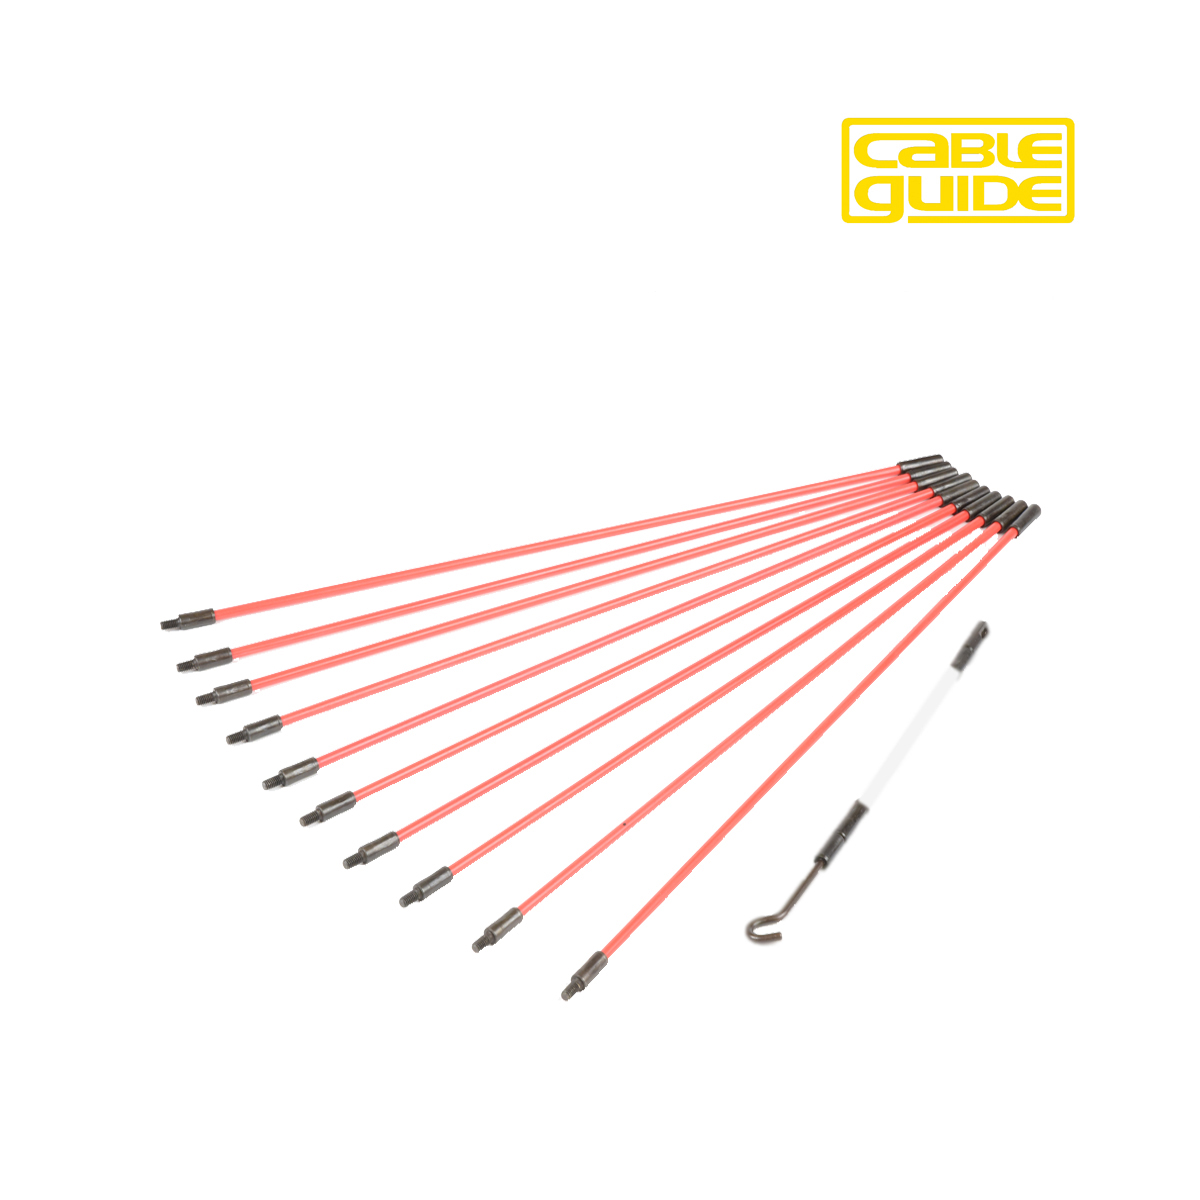 "10 x 300mm Cable Guide ""Mini"" Rod Set"